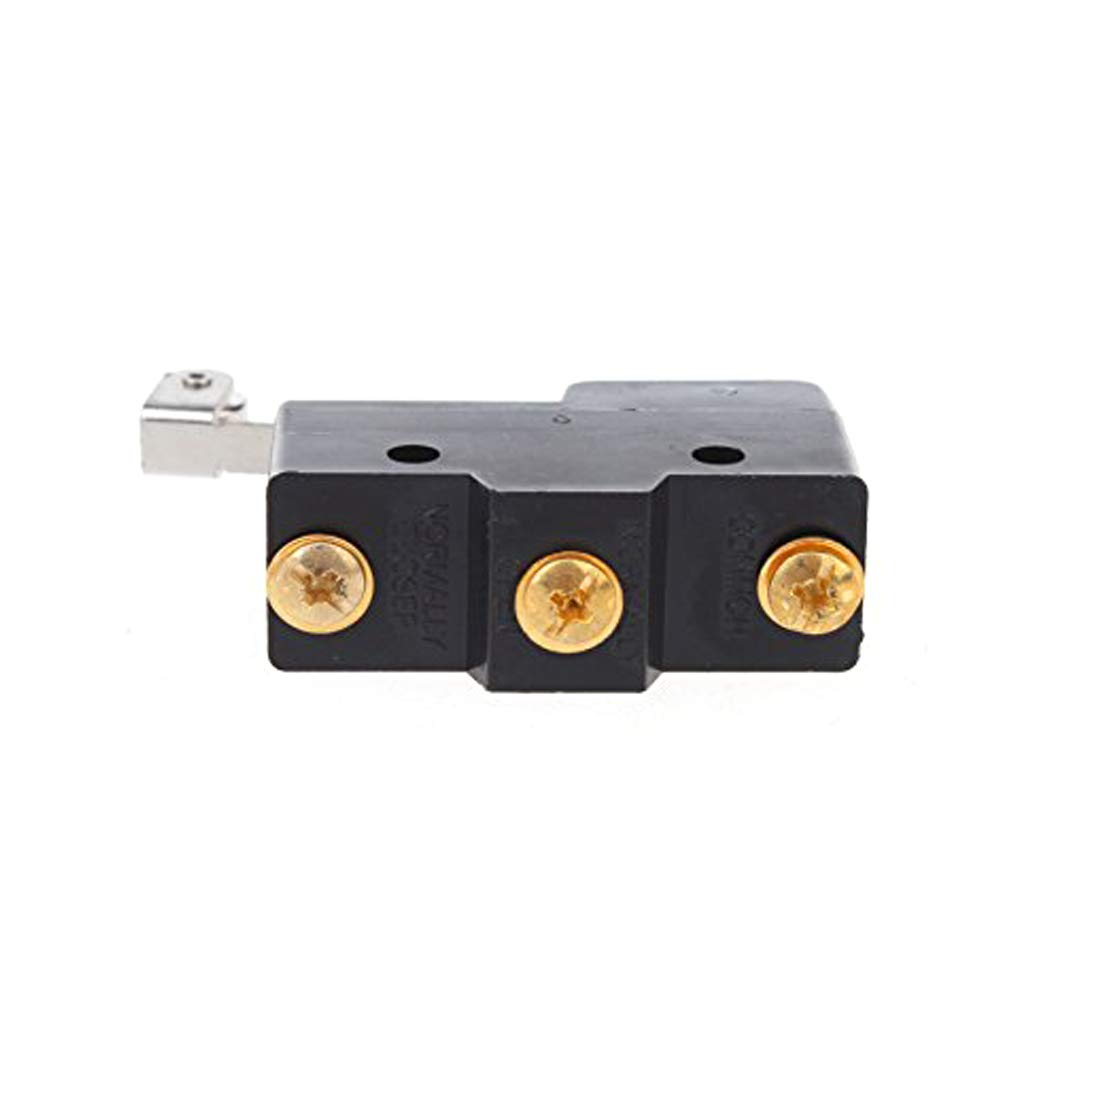 ZXHAO 2pcs 380VAC 220VDC Ith10A SPDT Long Hinge Roller Lever Limit Micro Switch